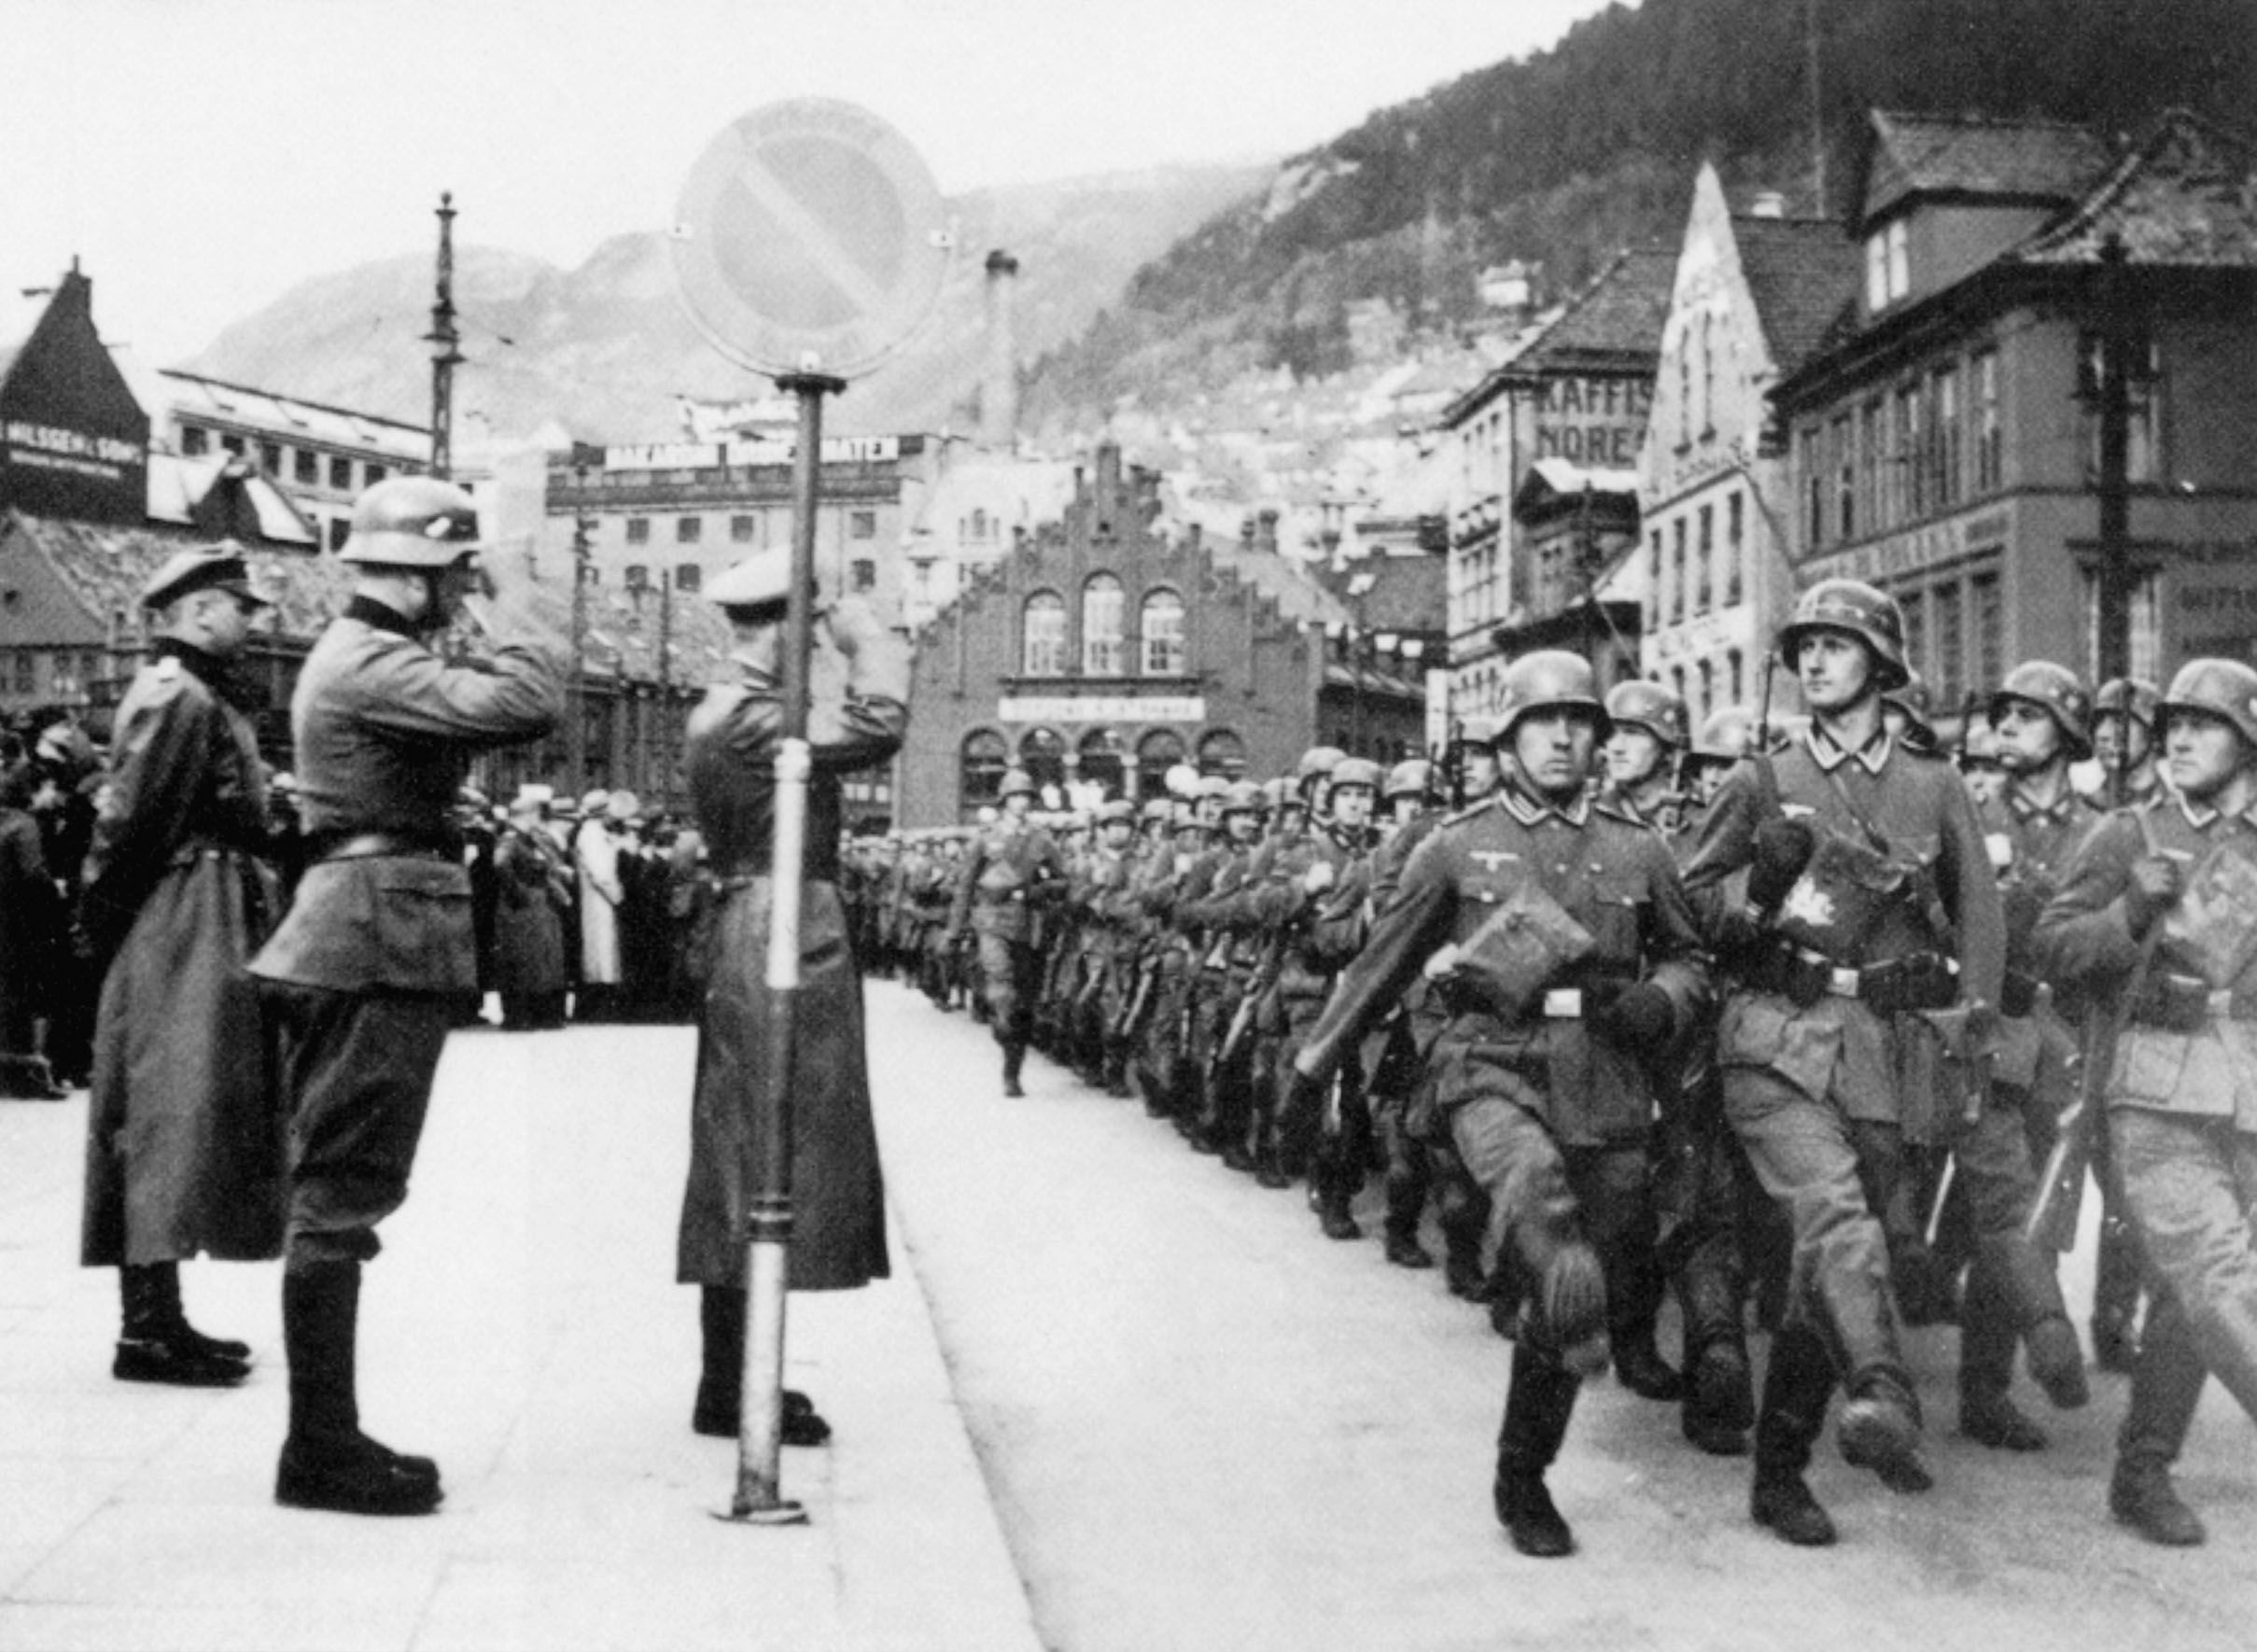 the role of germany in the development of world war one Germany entered the first world war as one of the era's mightiest military powers in 1914, germany's understanding of war was strongly influenced by four decades of peace and by its geostrategic situation.